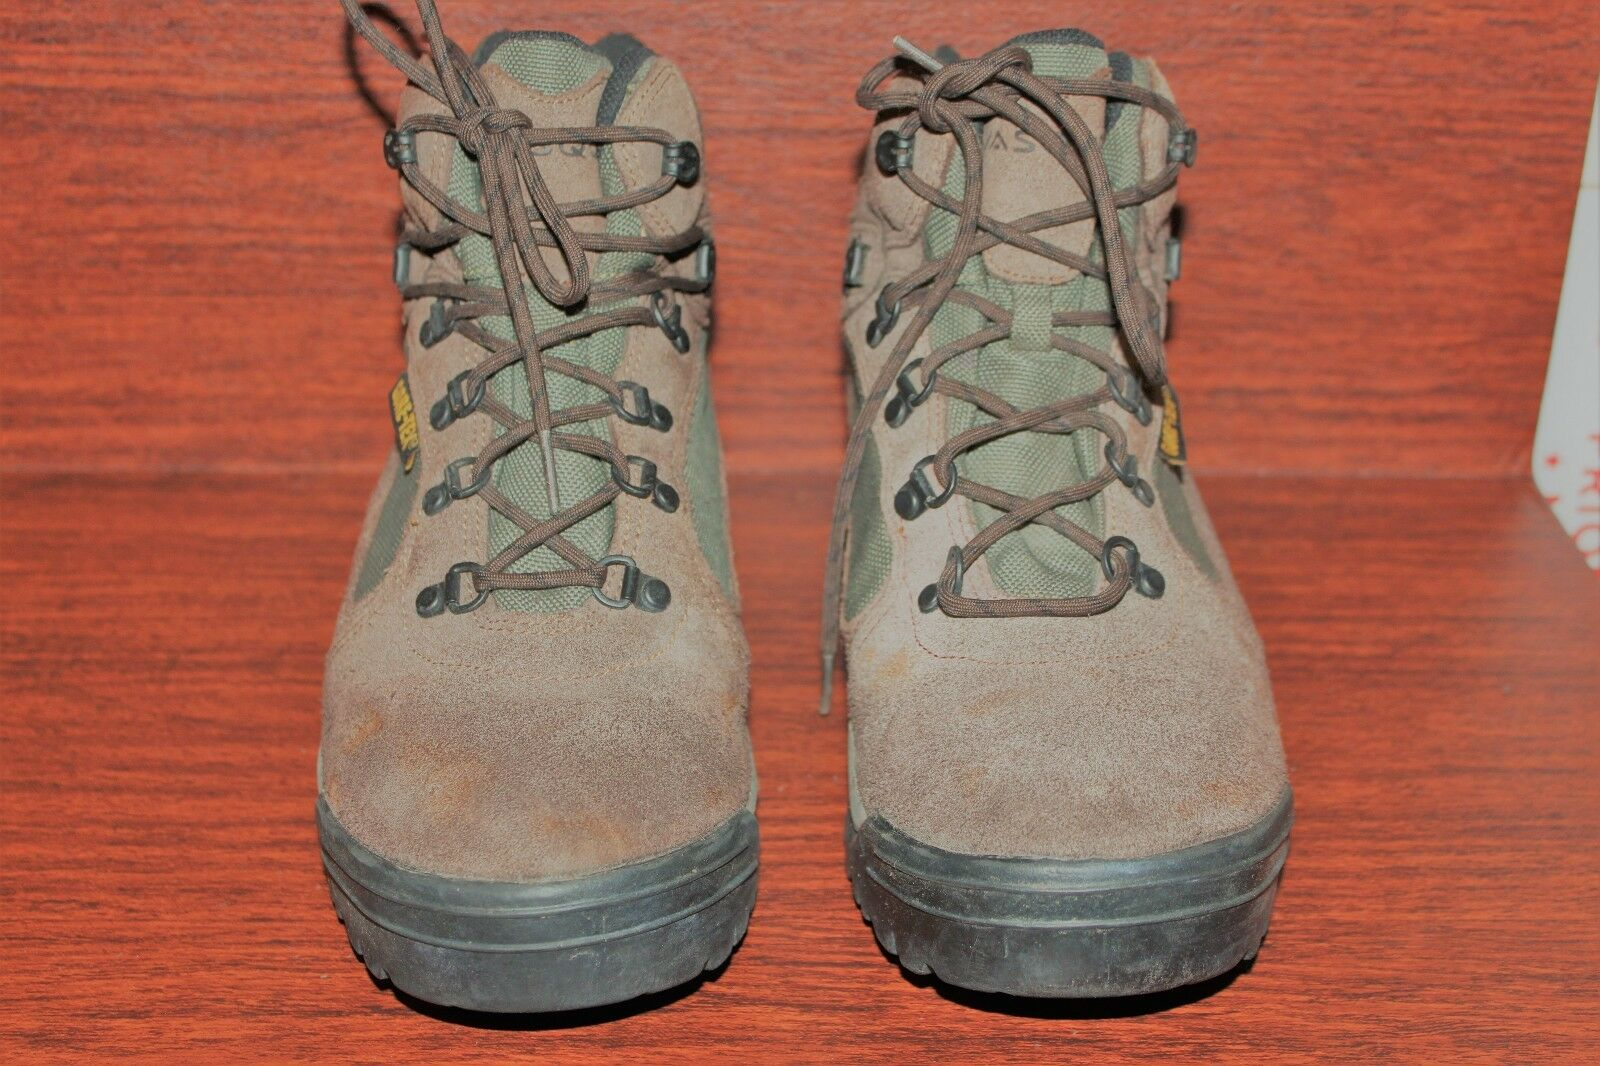 VASQUE RANGER 7210 SUEDE GTX HIKING stivali uomo Dimensione 10 MEDIUM